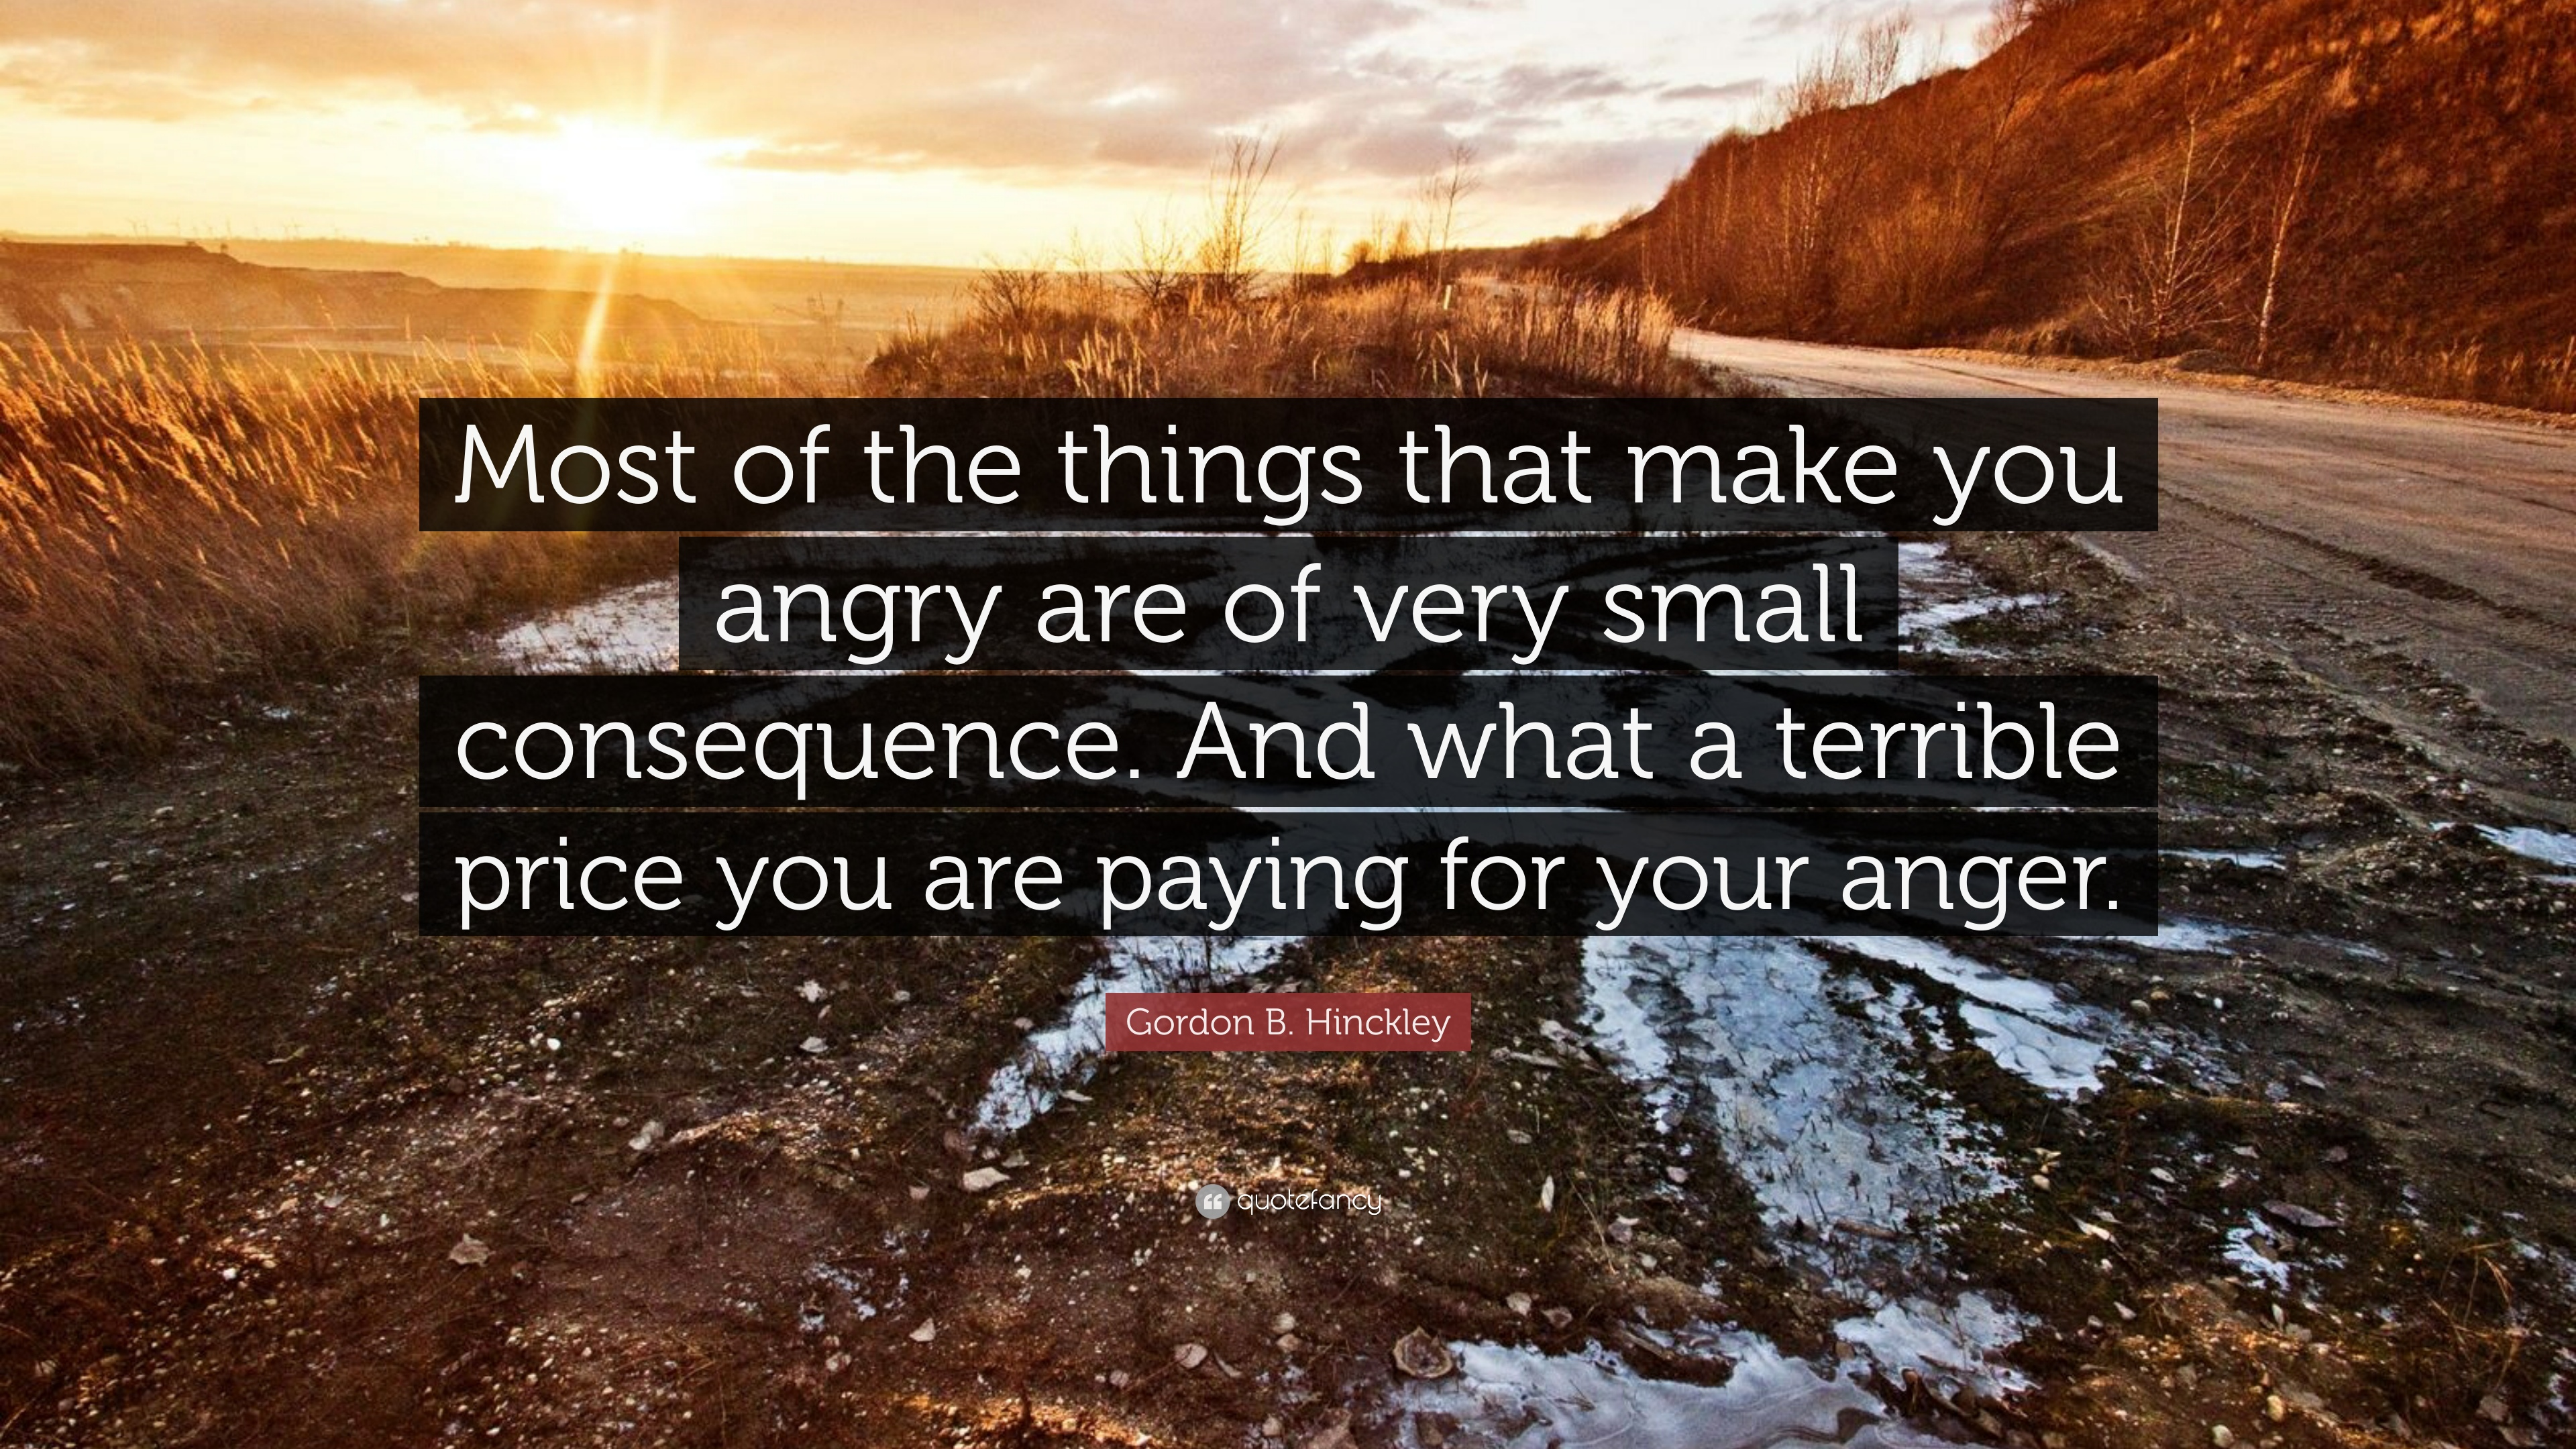 gordon b hinckley quote most of the things that make you angry gordon b hinckley quote most of the things that make you angry are